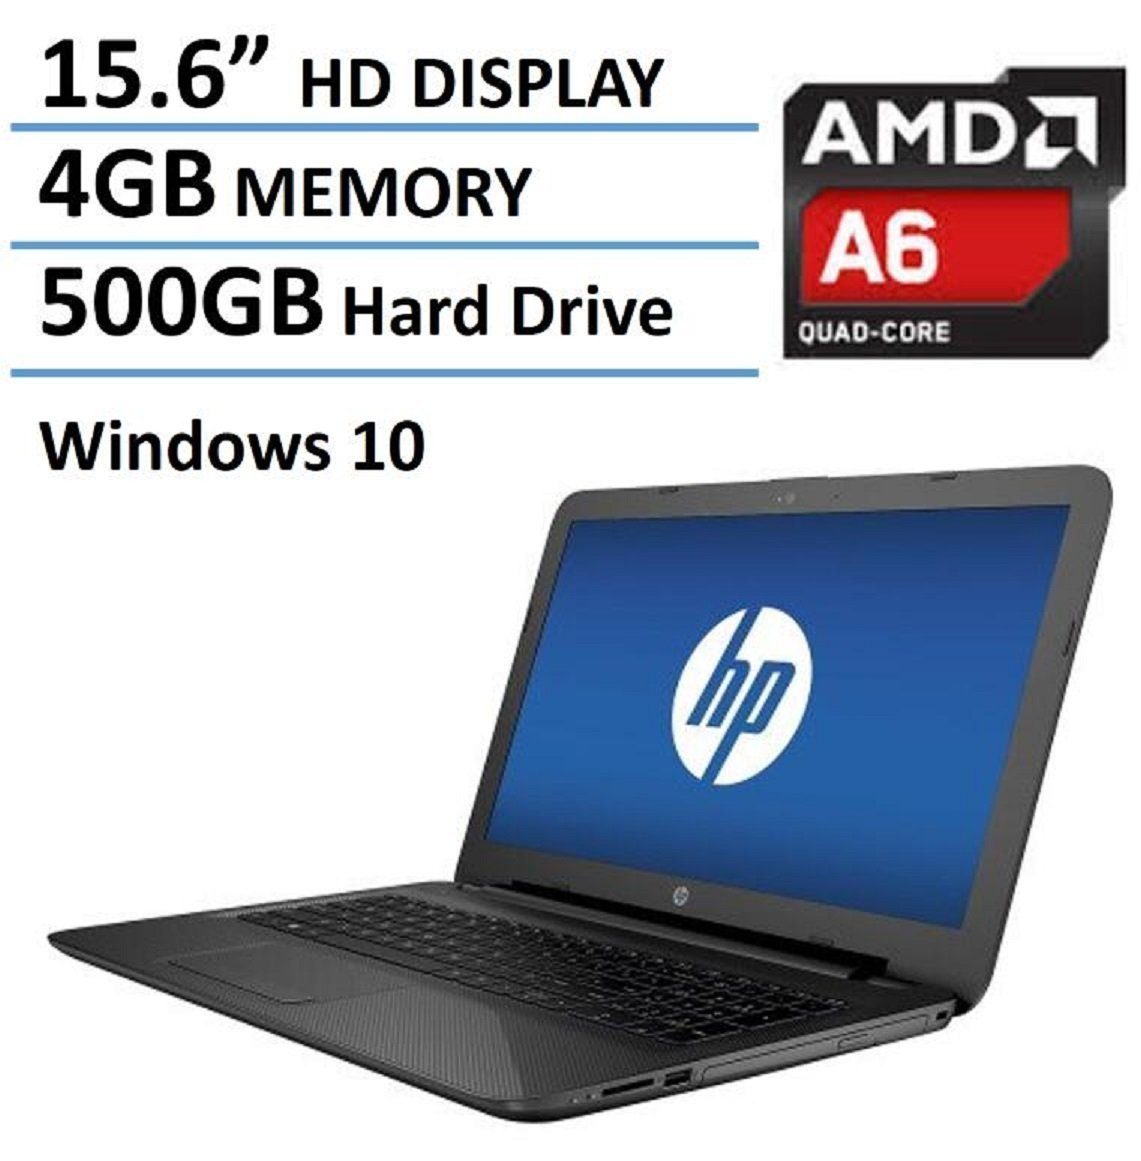 Cheap Amd Laptop Graphics, find Amd Laptop Graphics deals on